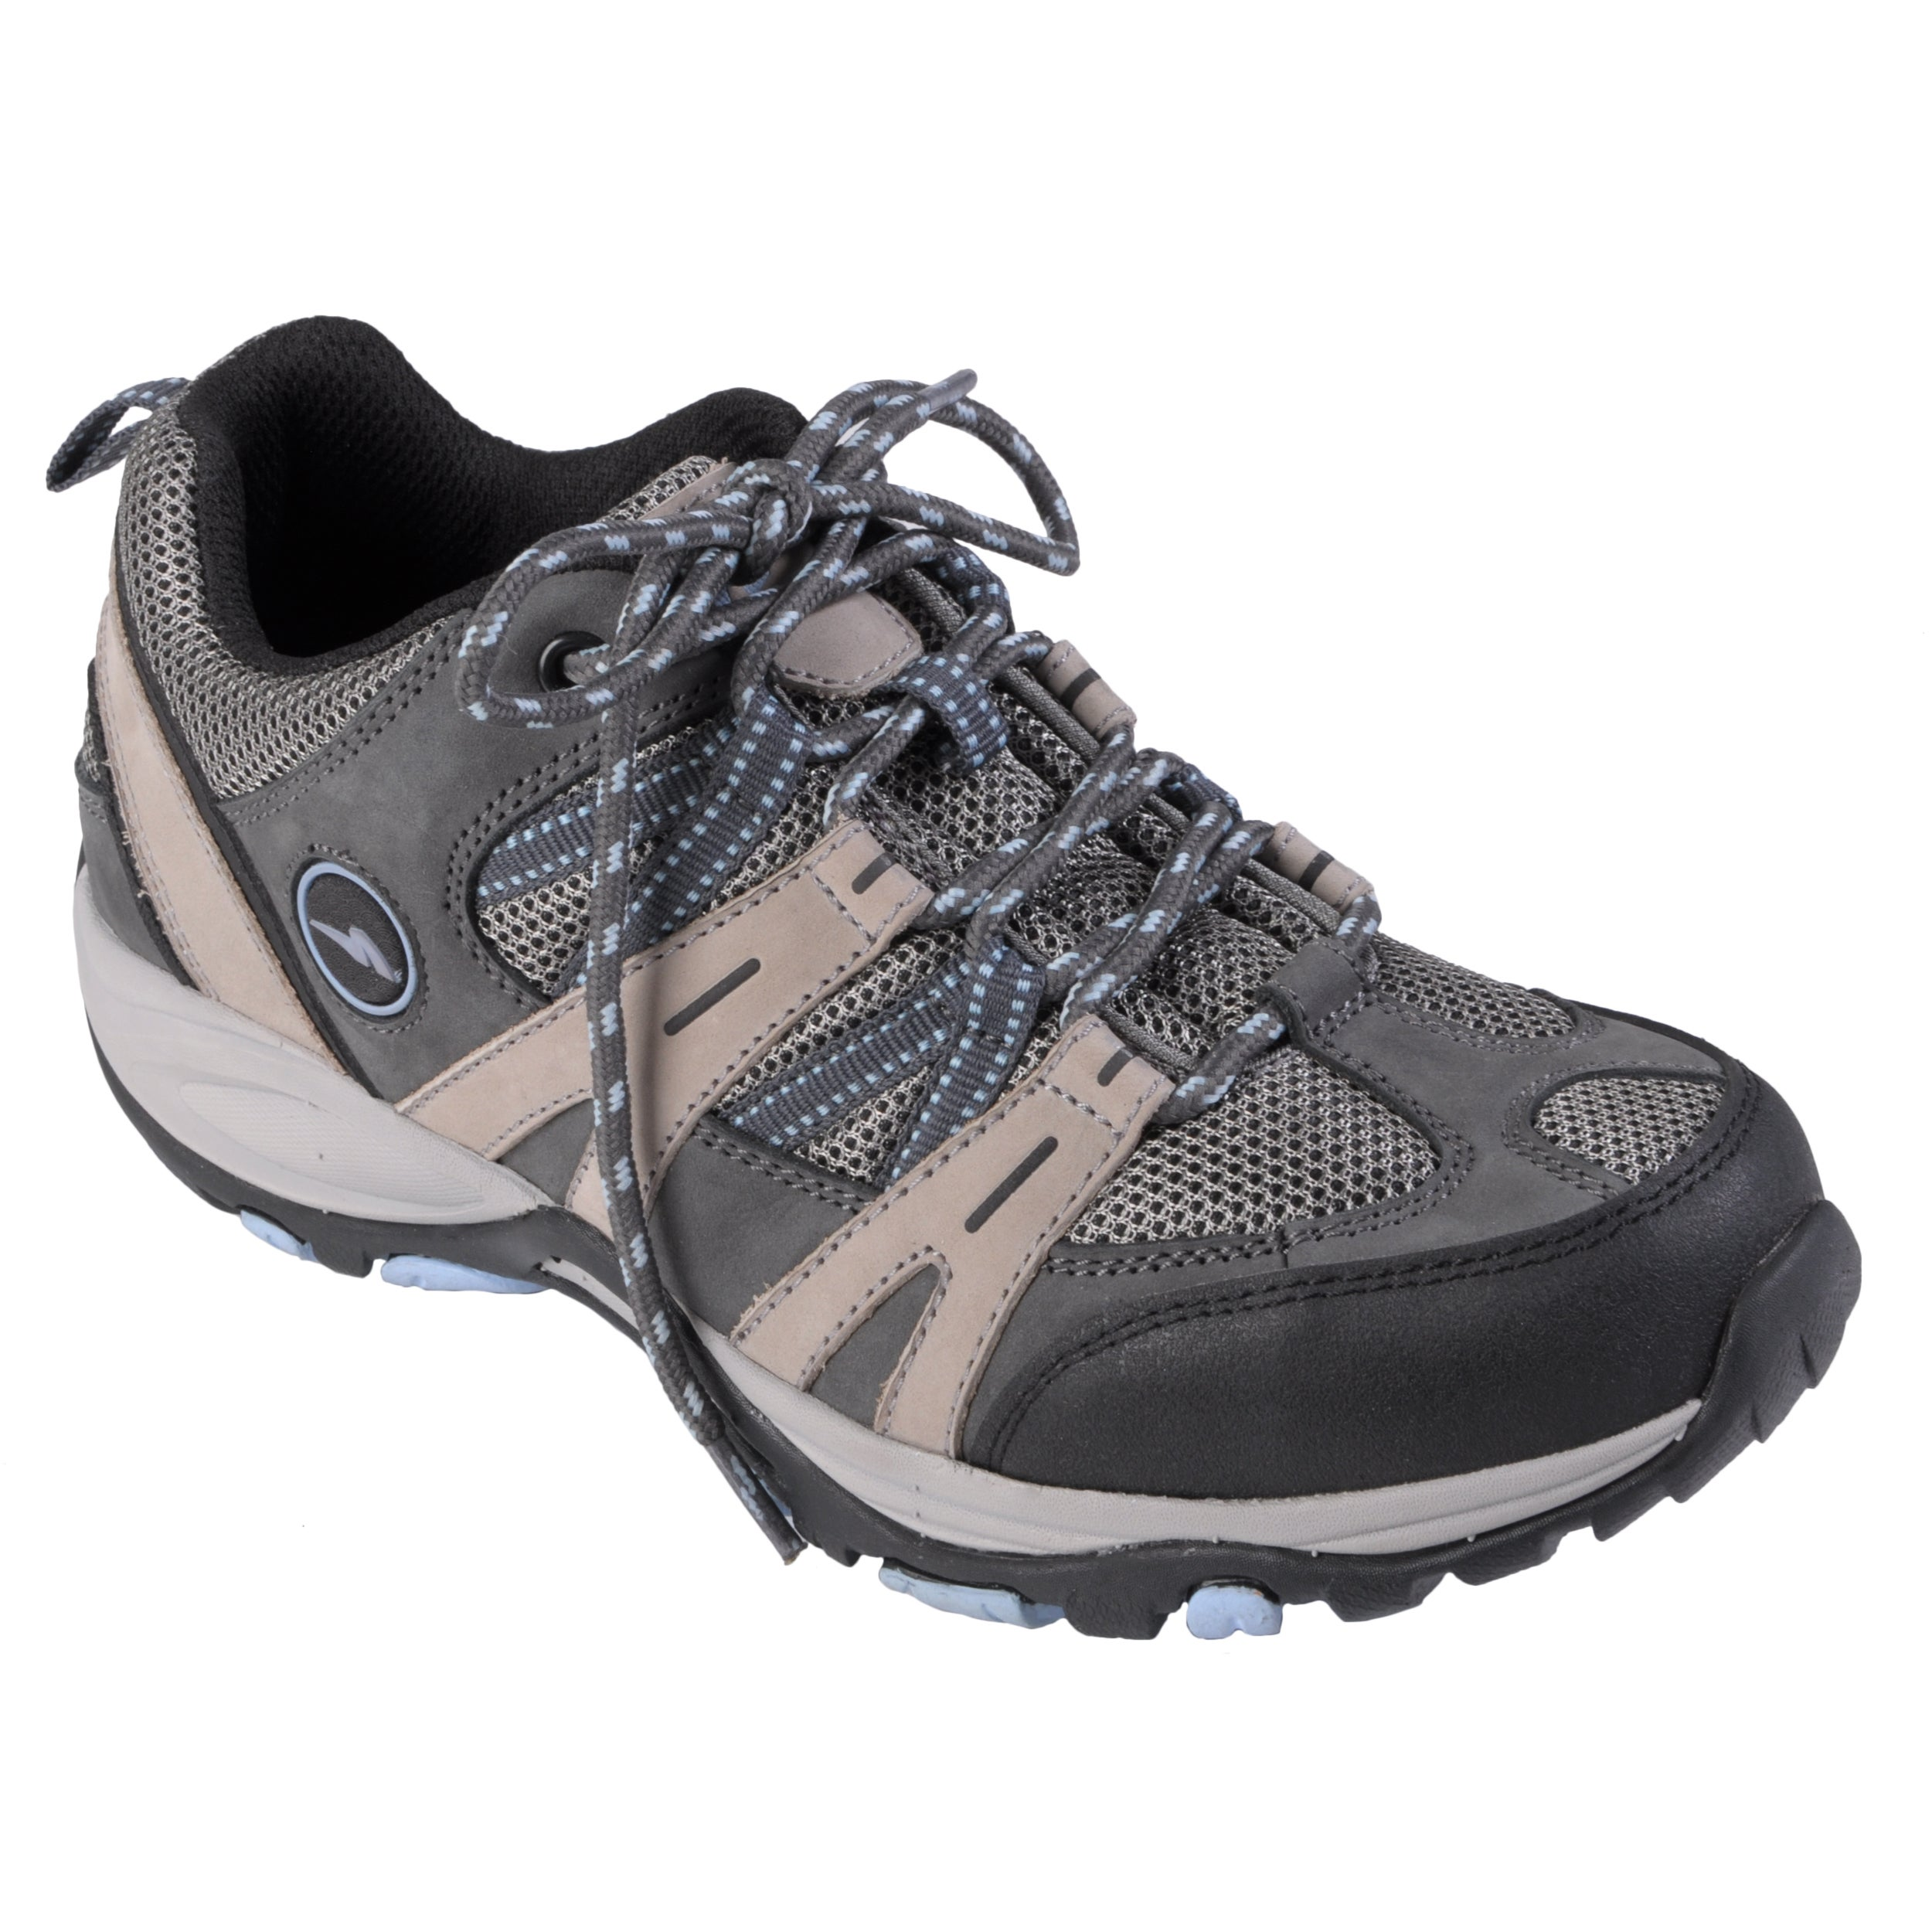 Slickrock Women's Lightweight Waterproof Lace-up Hiking Shoes